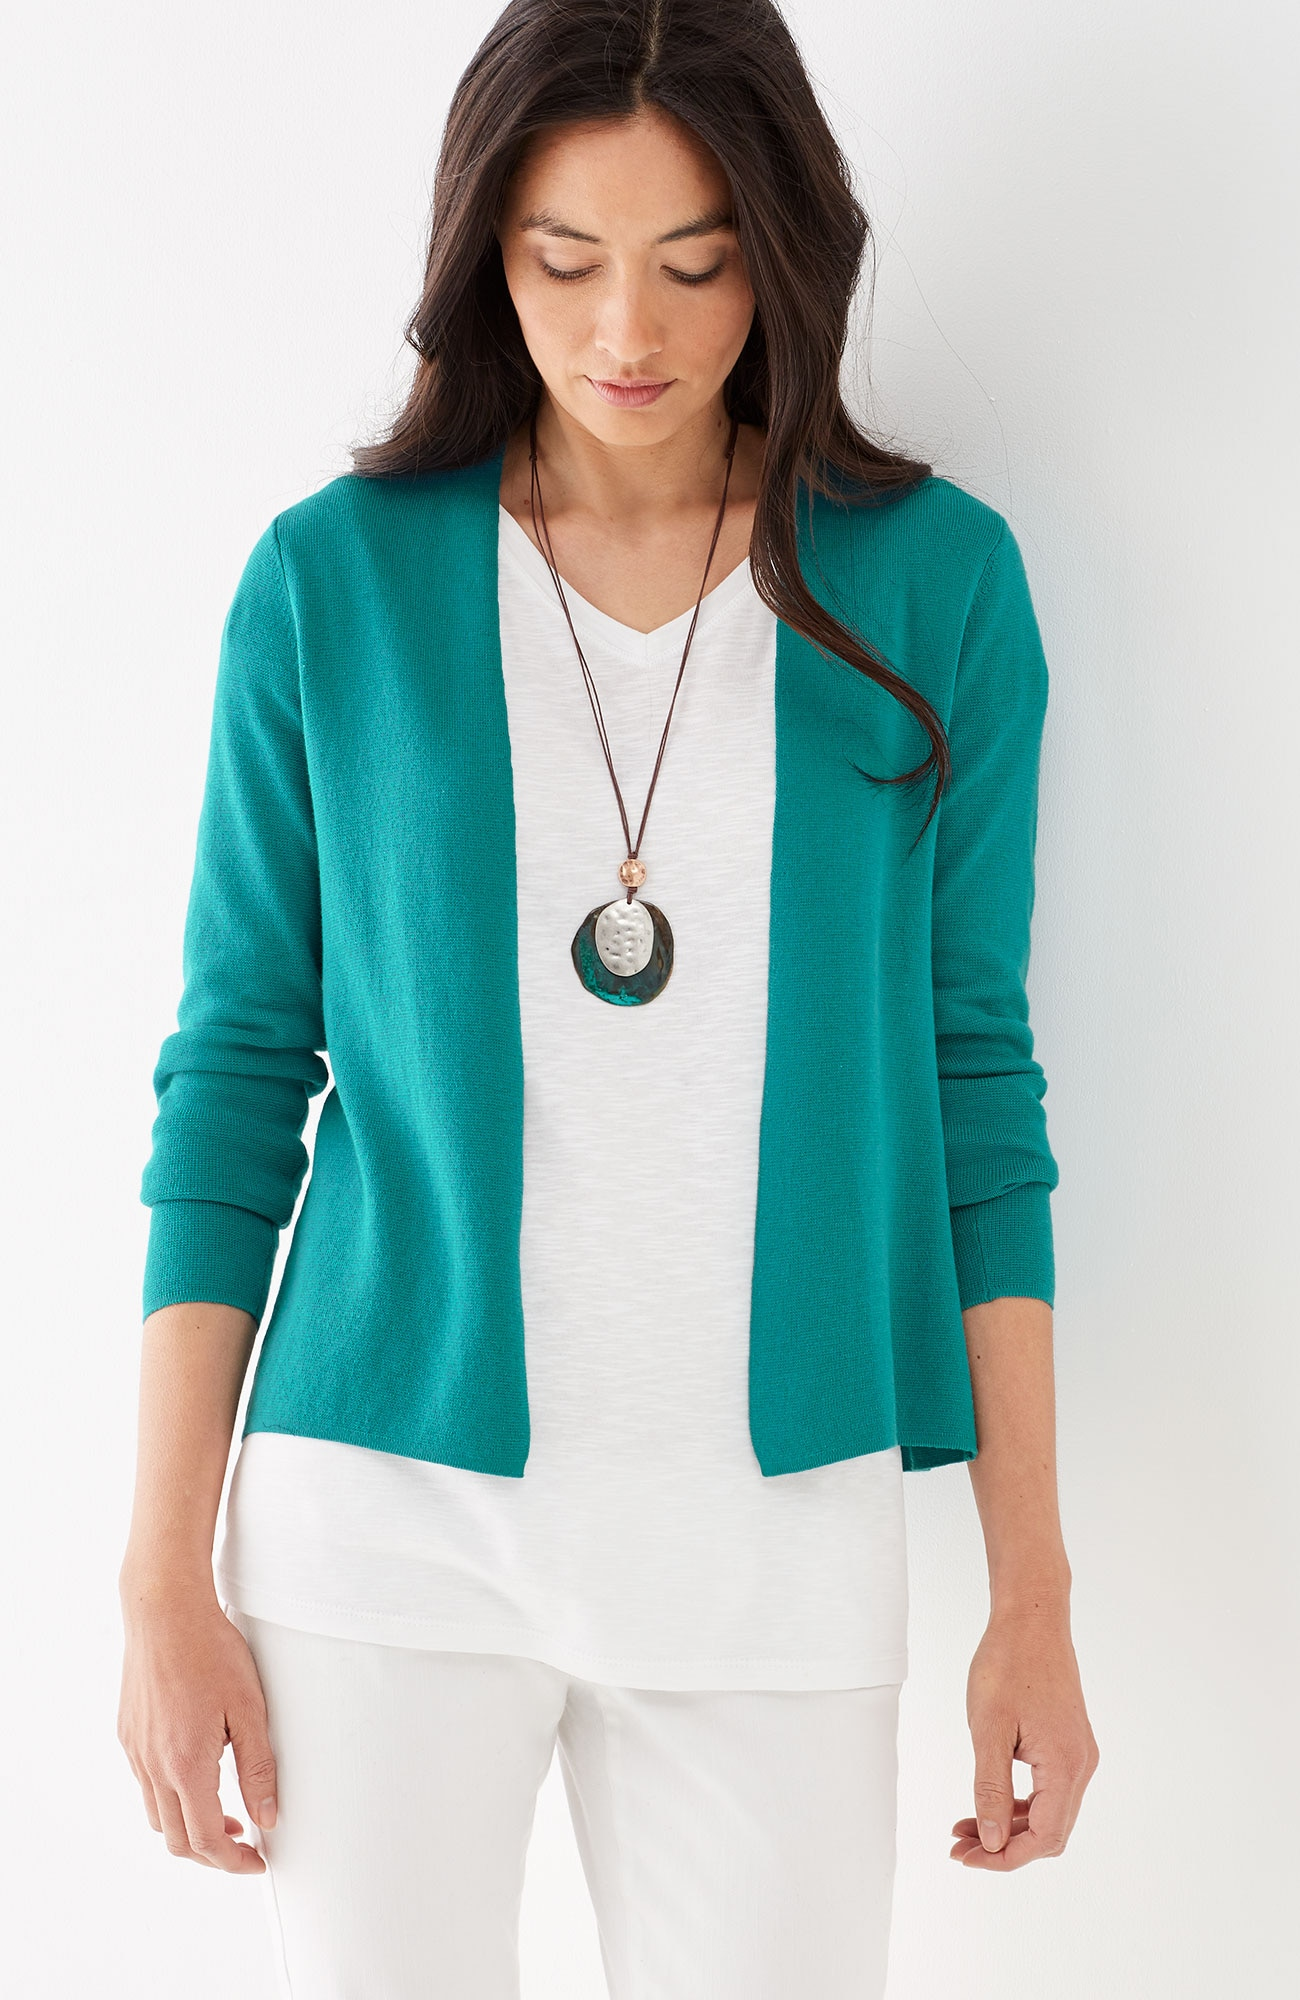 perfect short cardigan